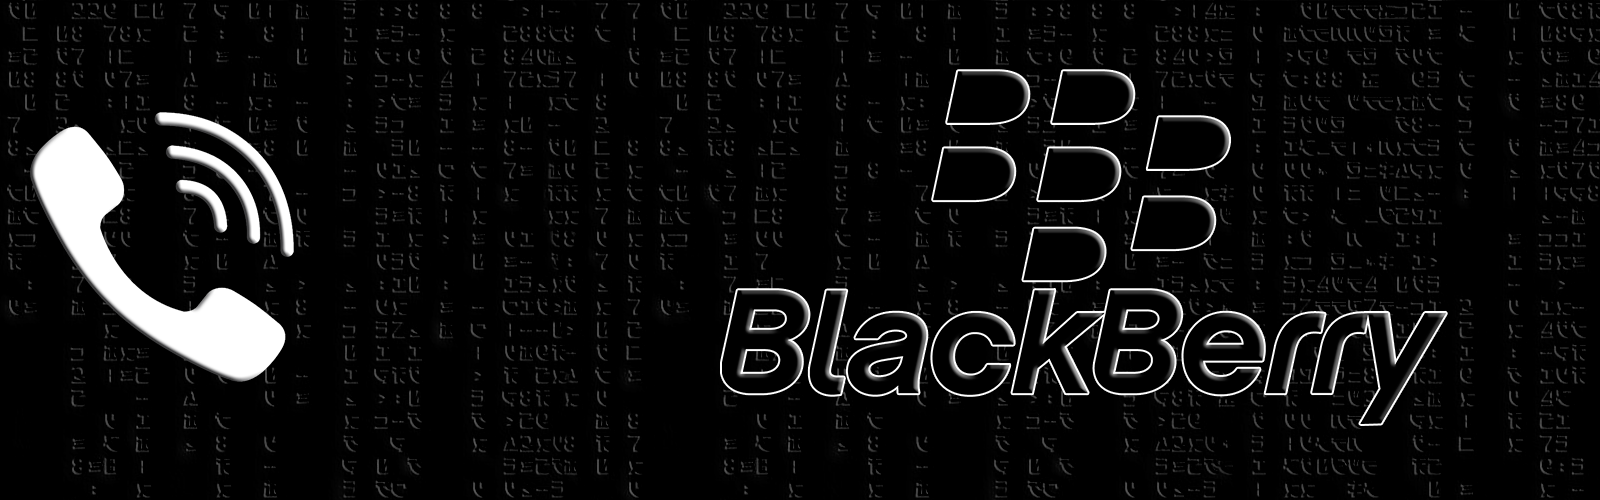 header-blackberry